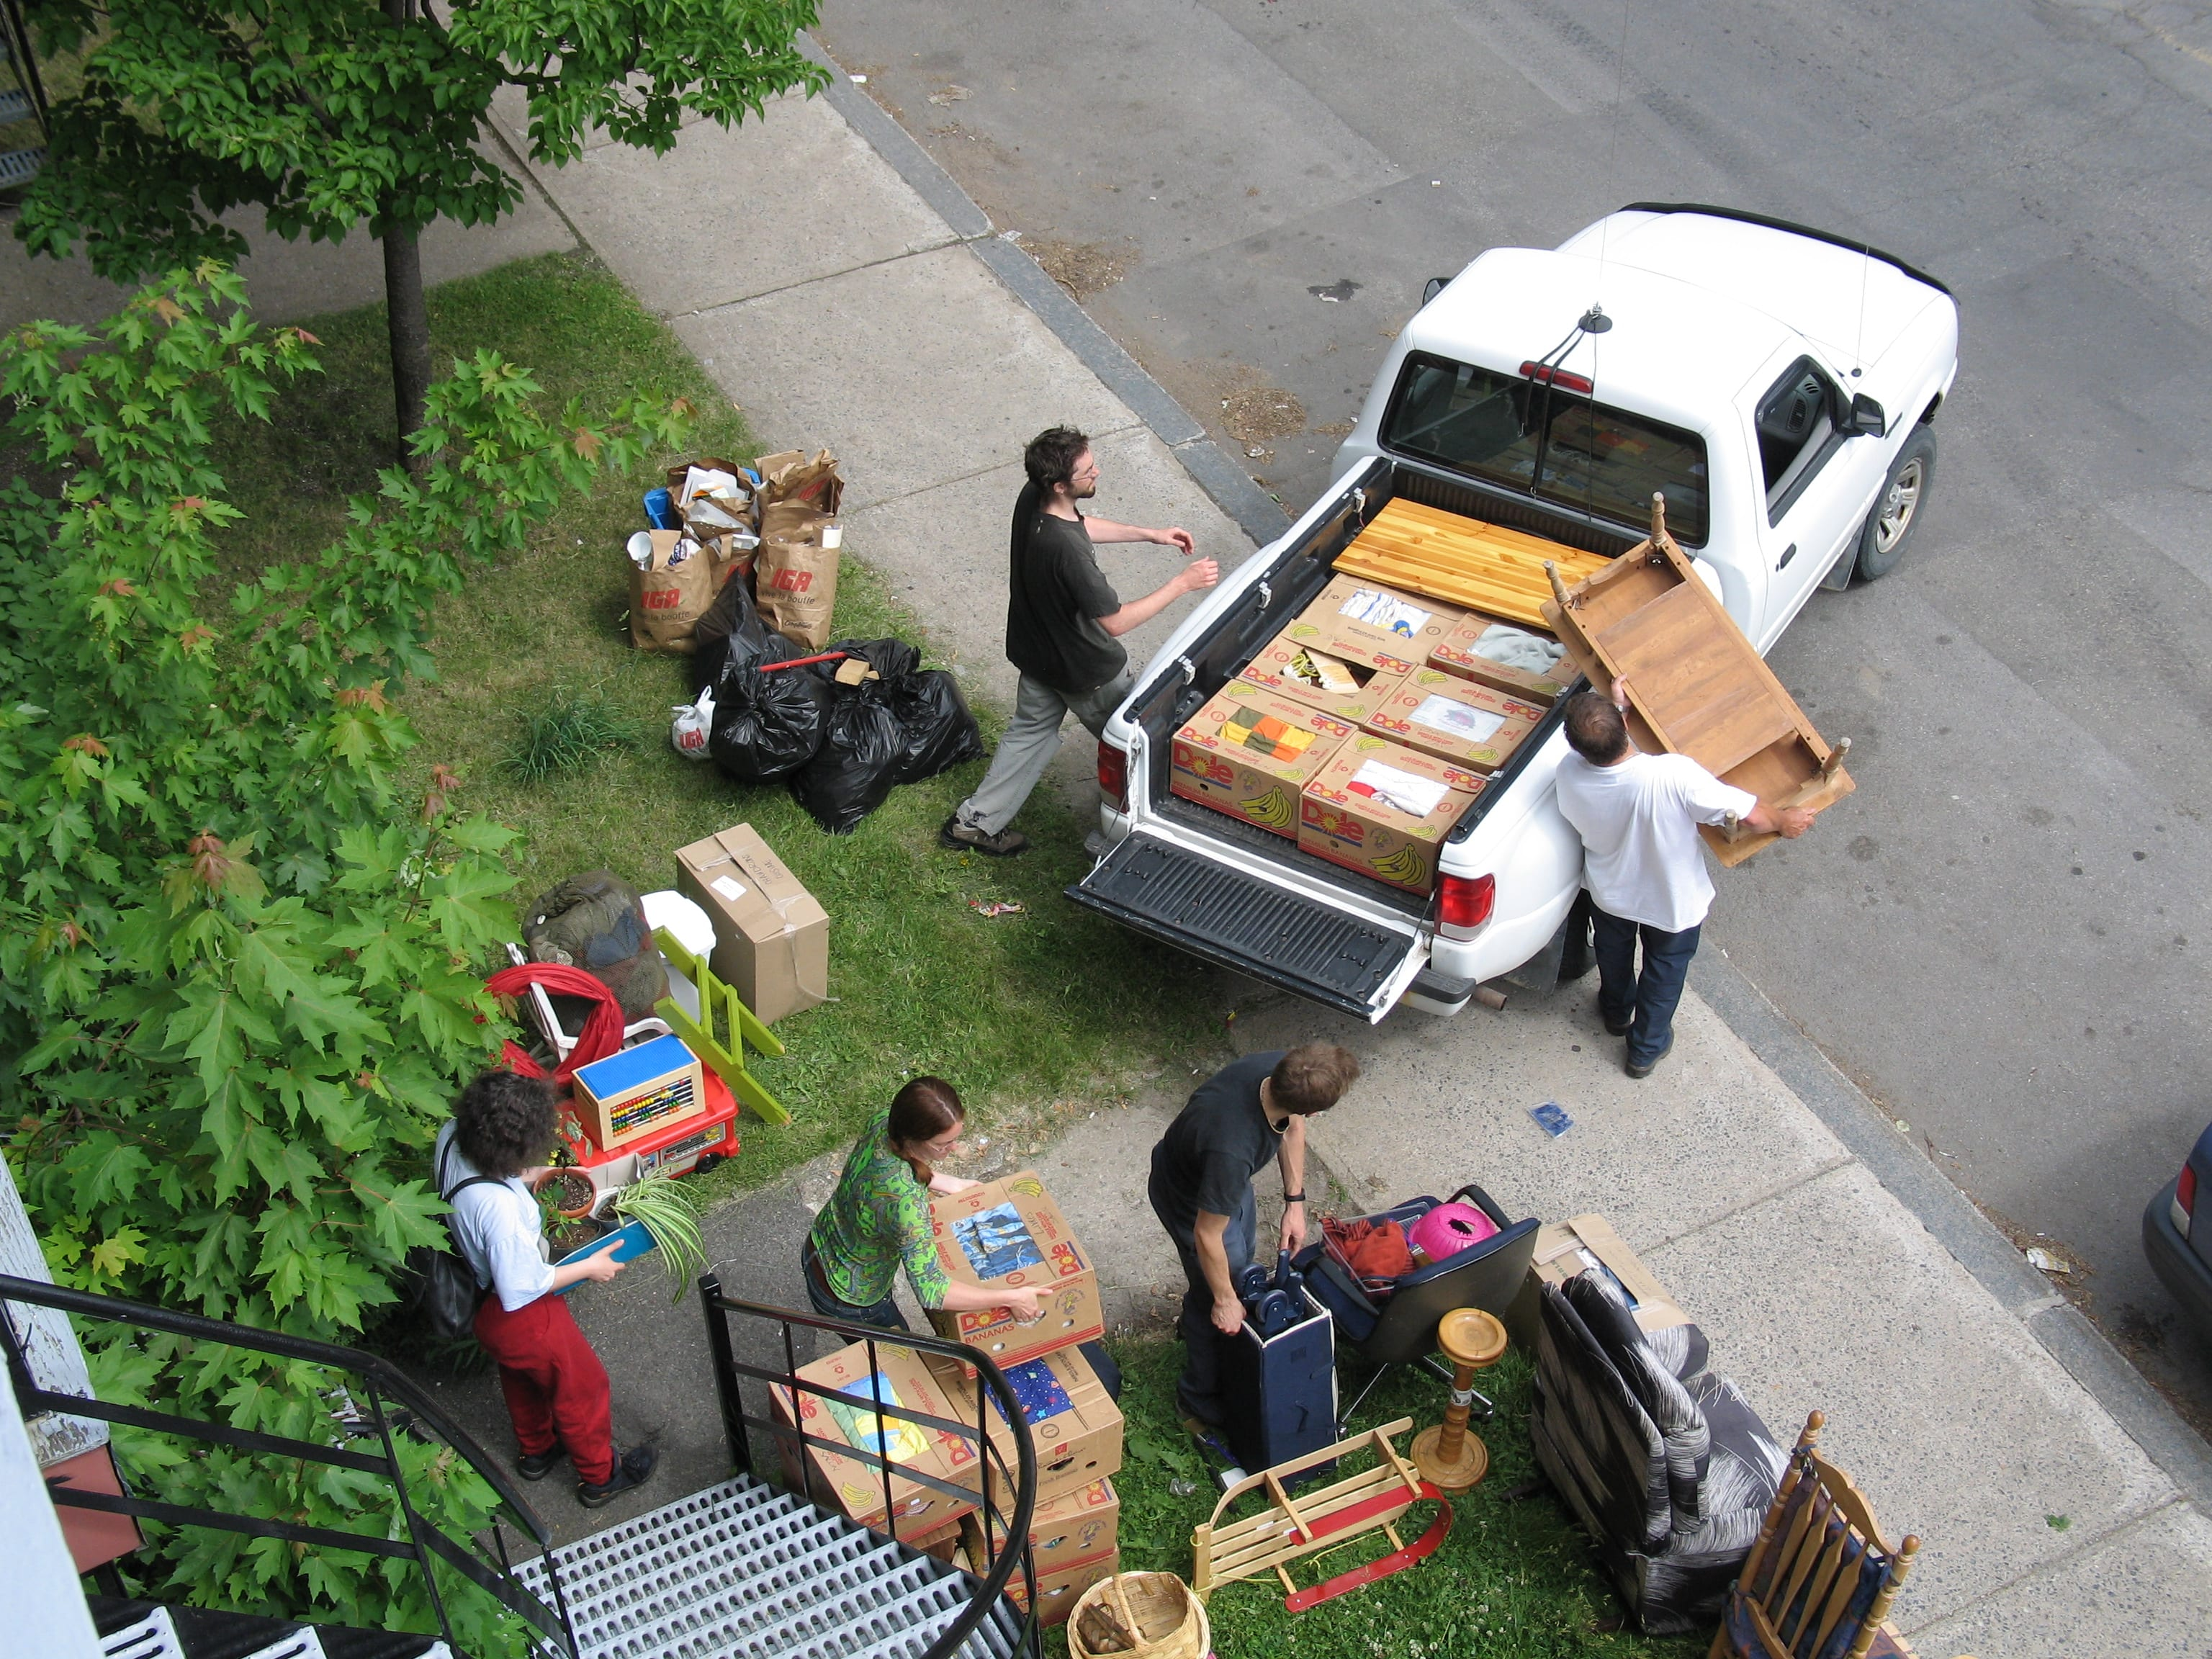 Moving companies can take the stress out of back to school moves.